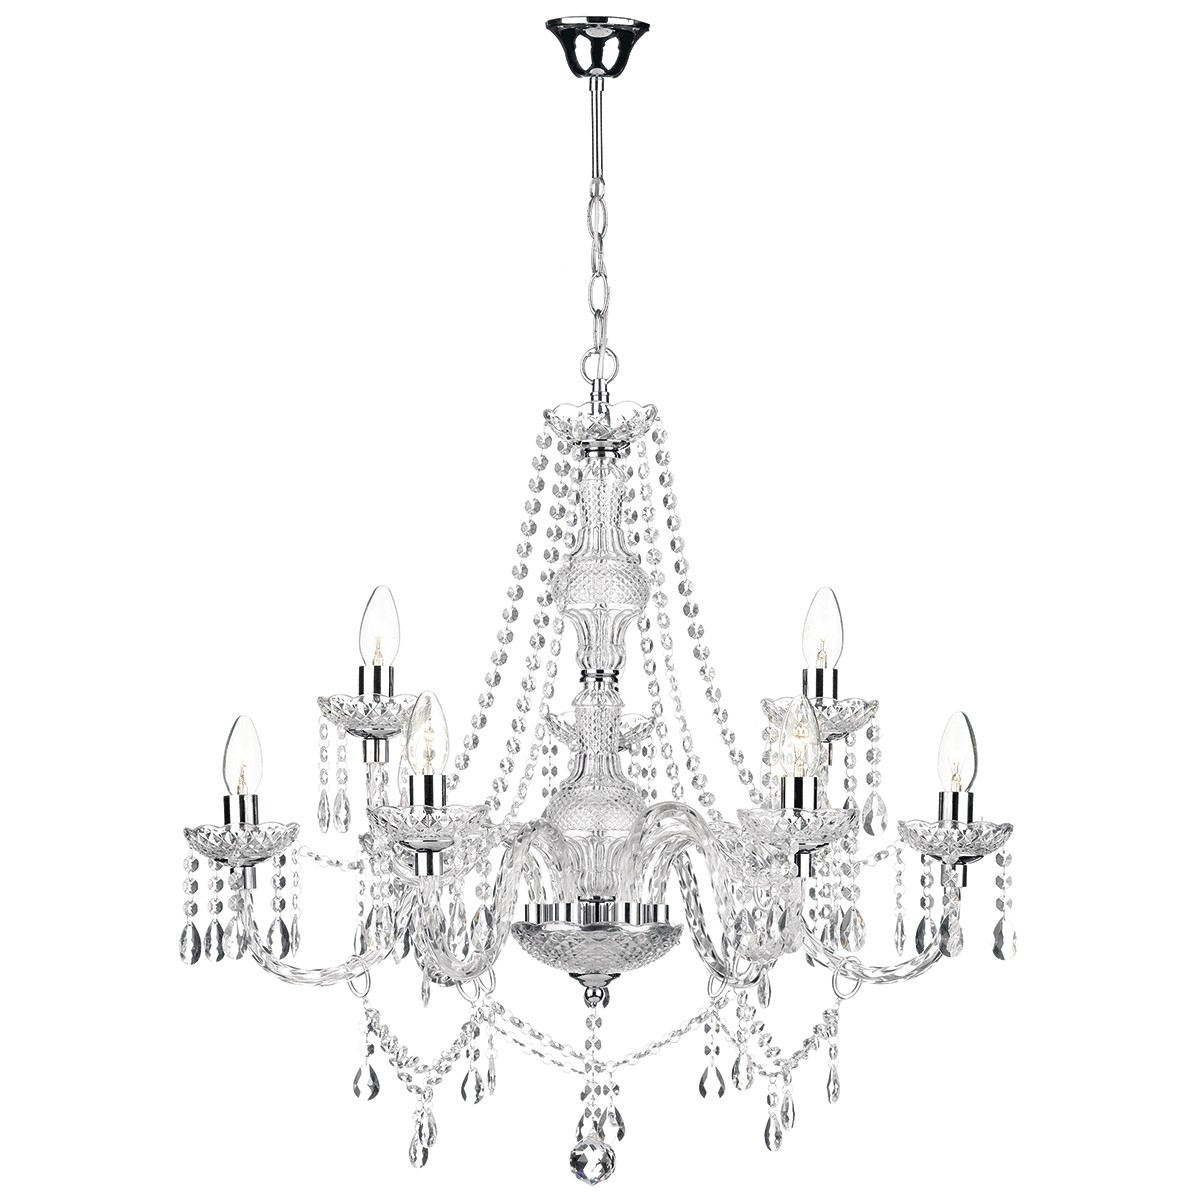 Top 25 Chrome And Glass Chandeliers